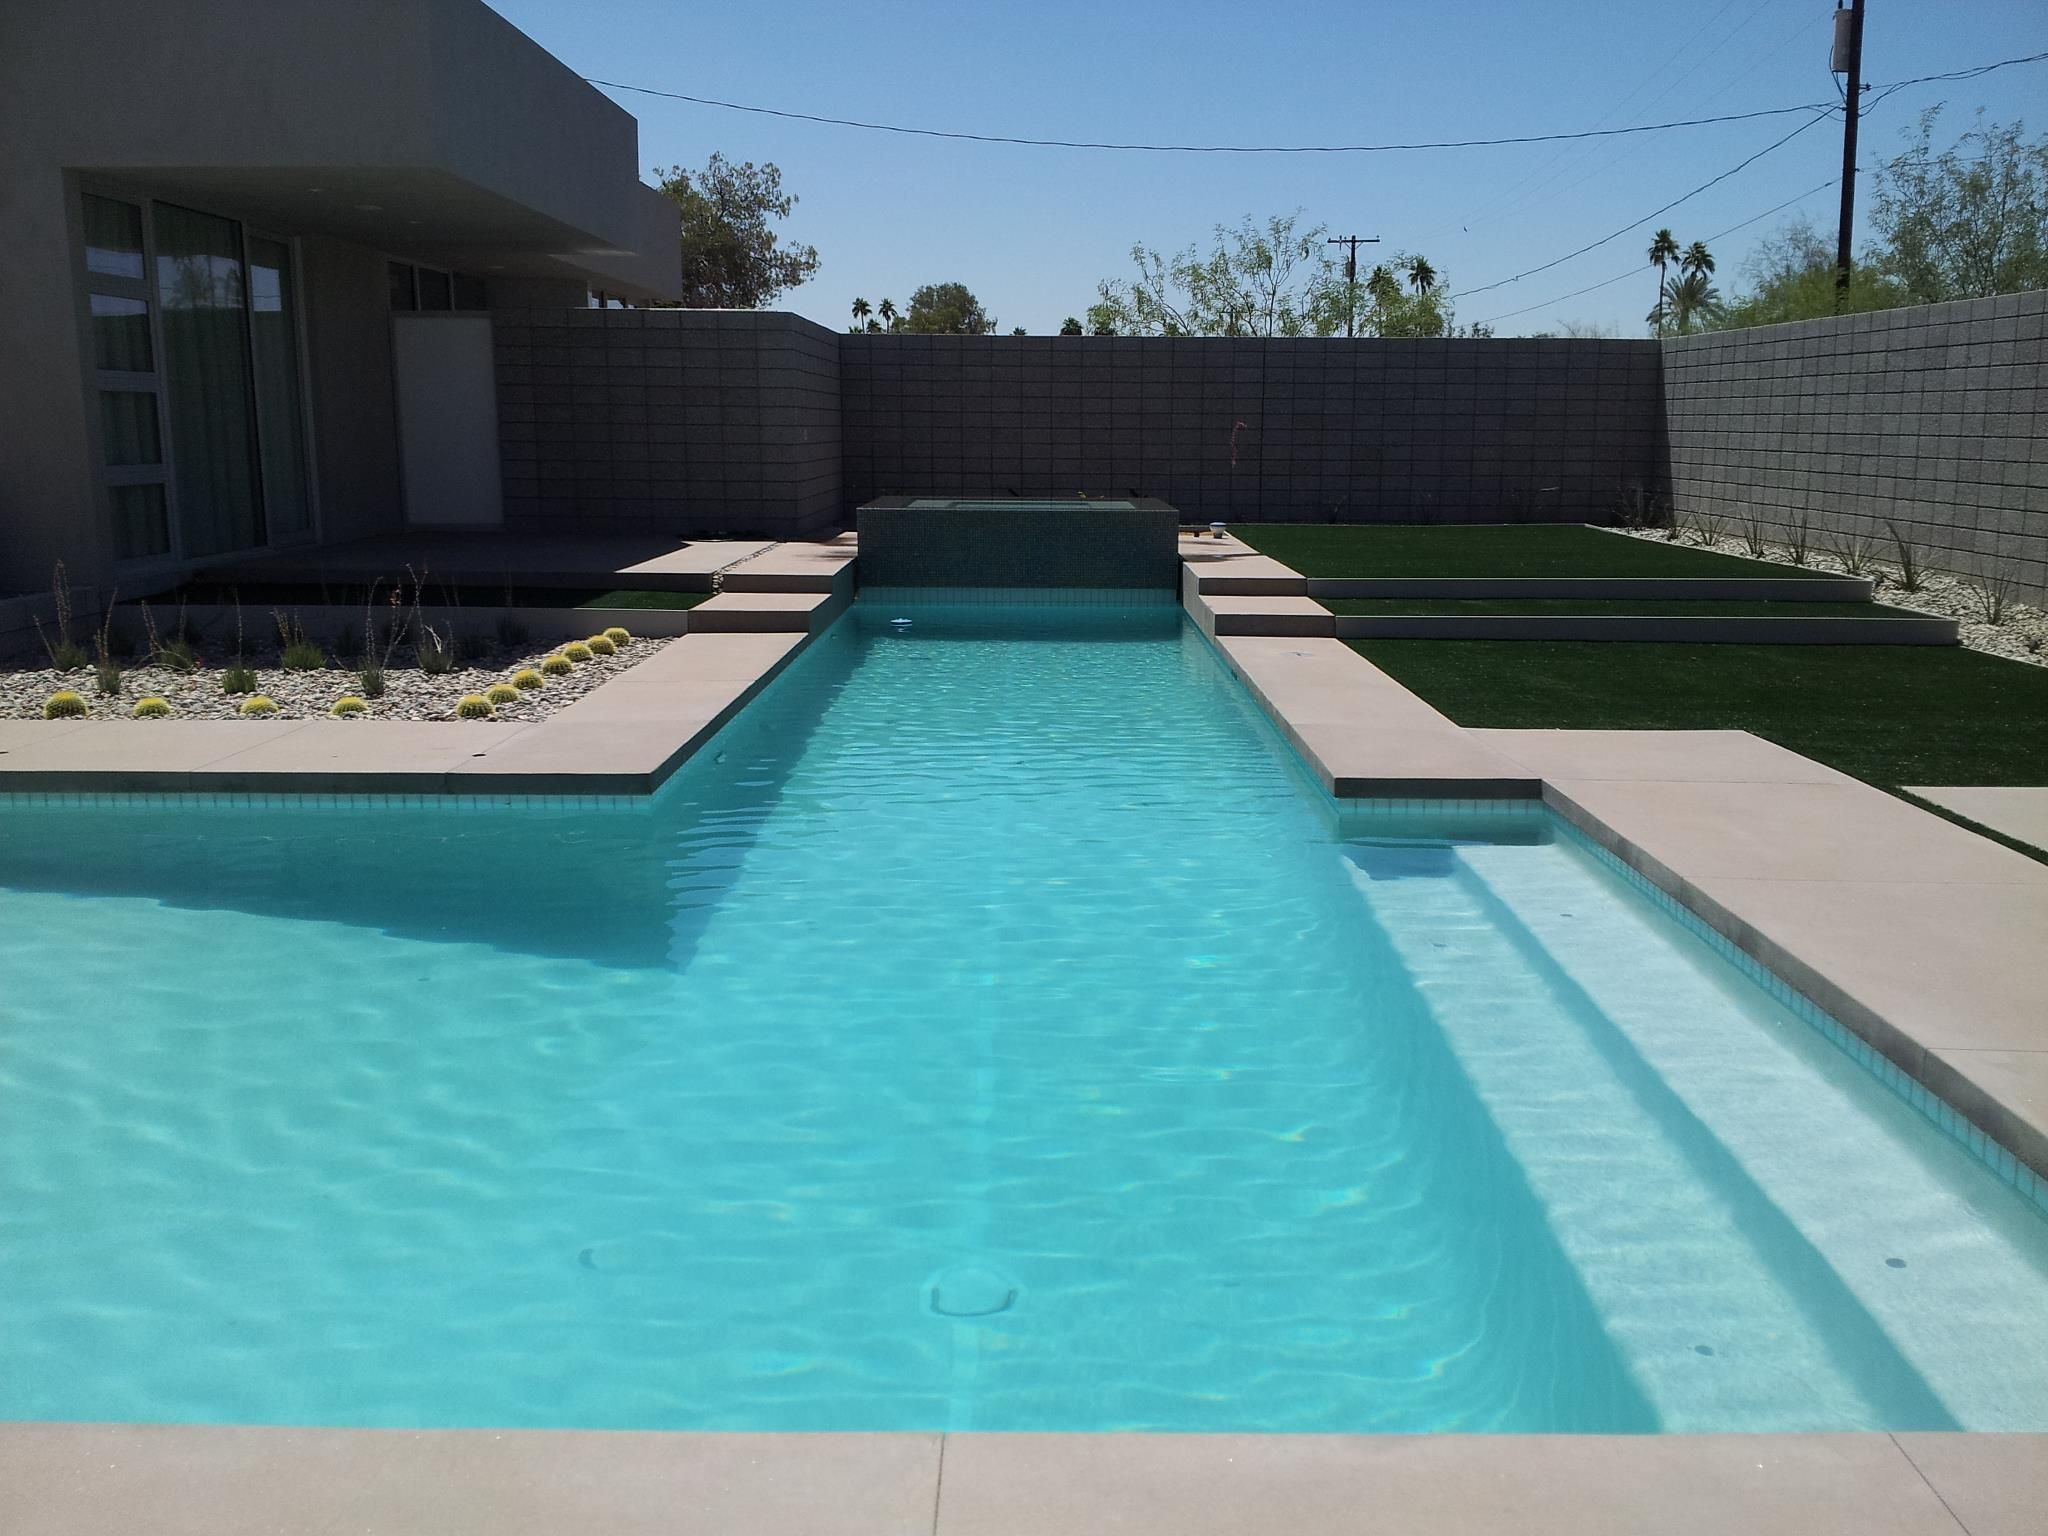 Pin modern pool design on pinterest - Find This Pin And More On Pools Designer Inside The Pool